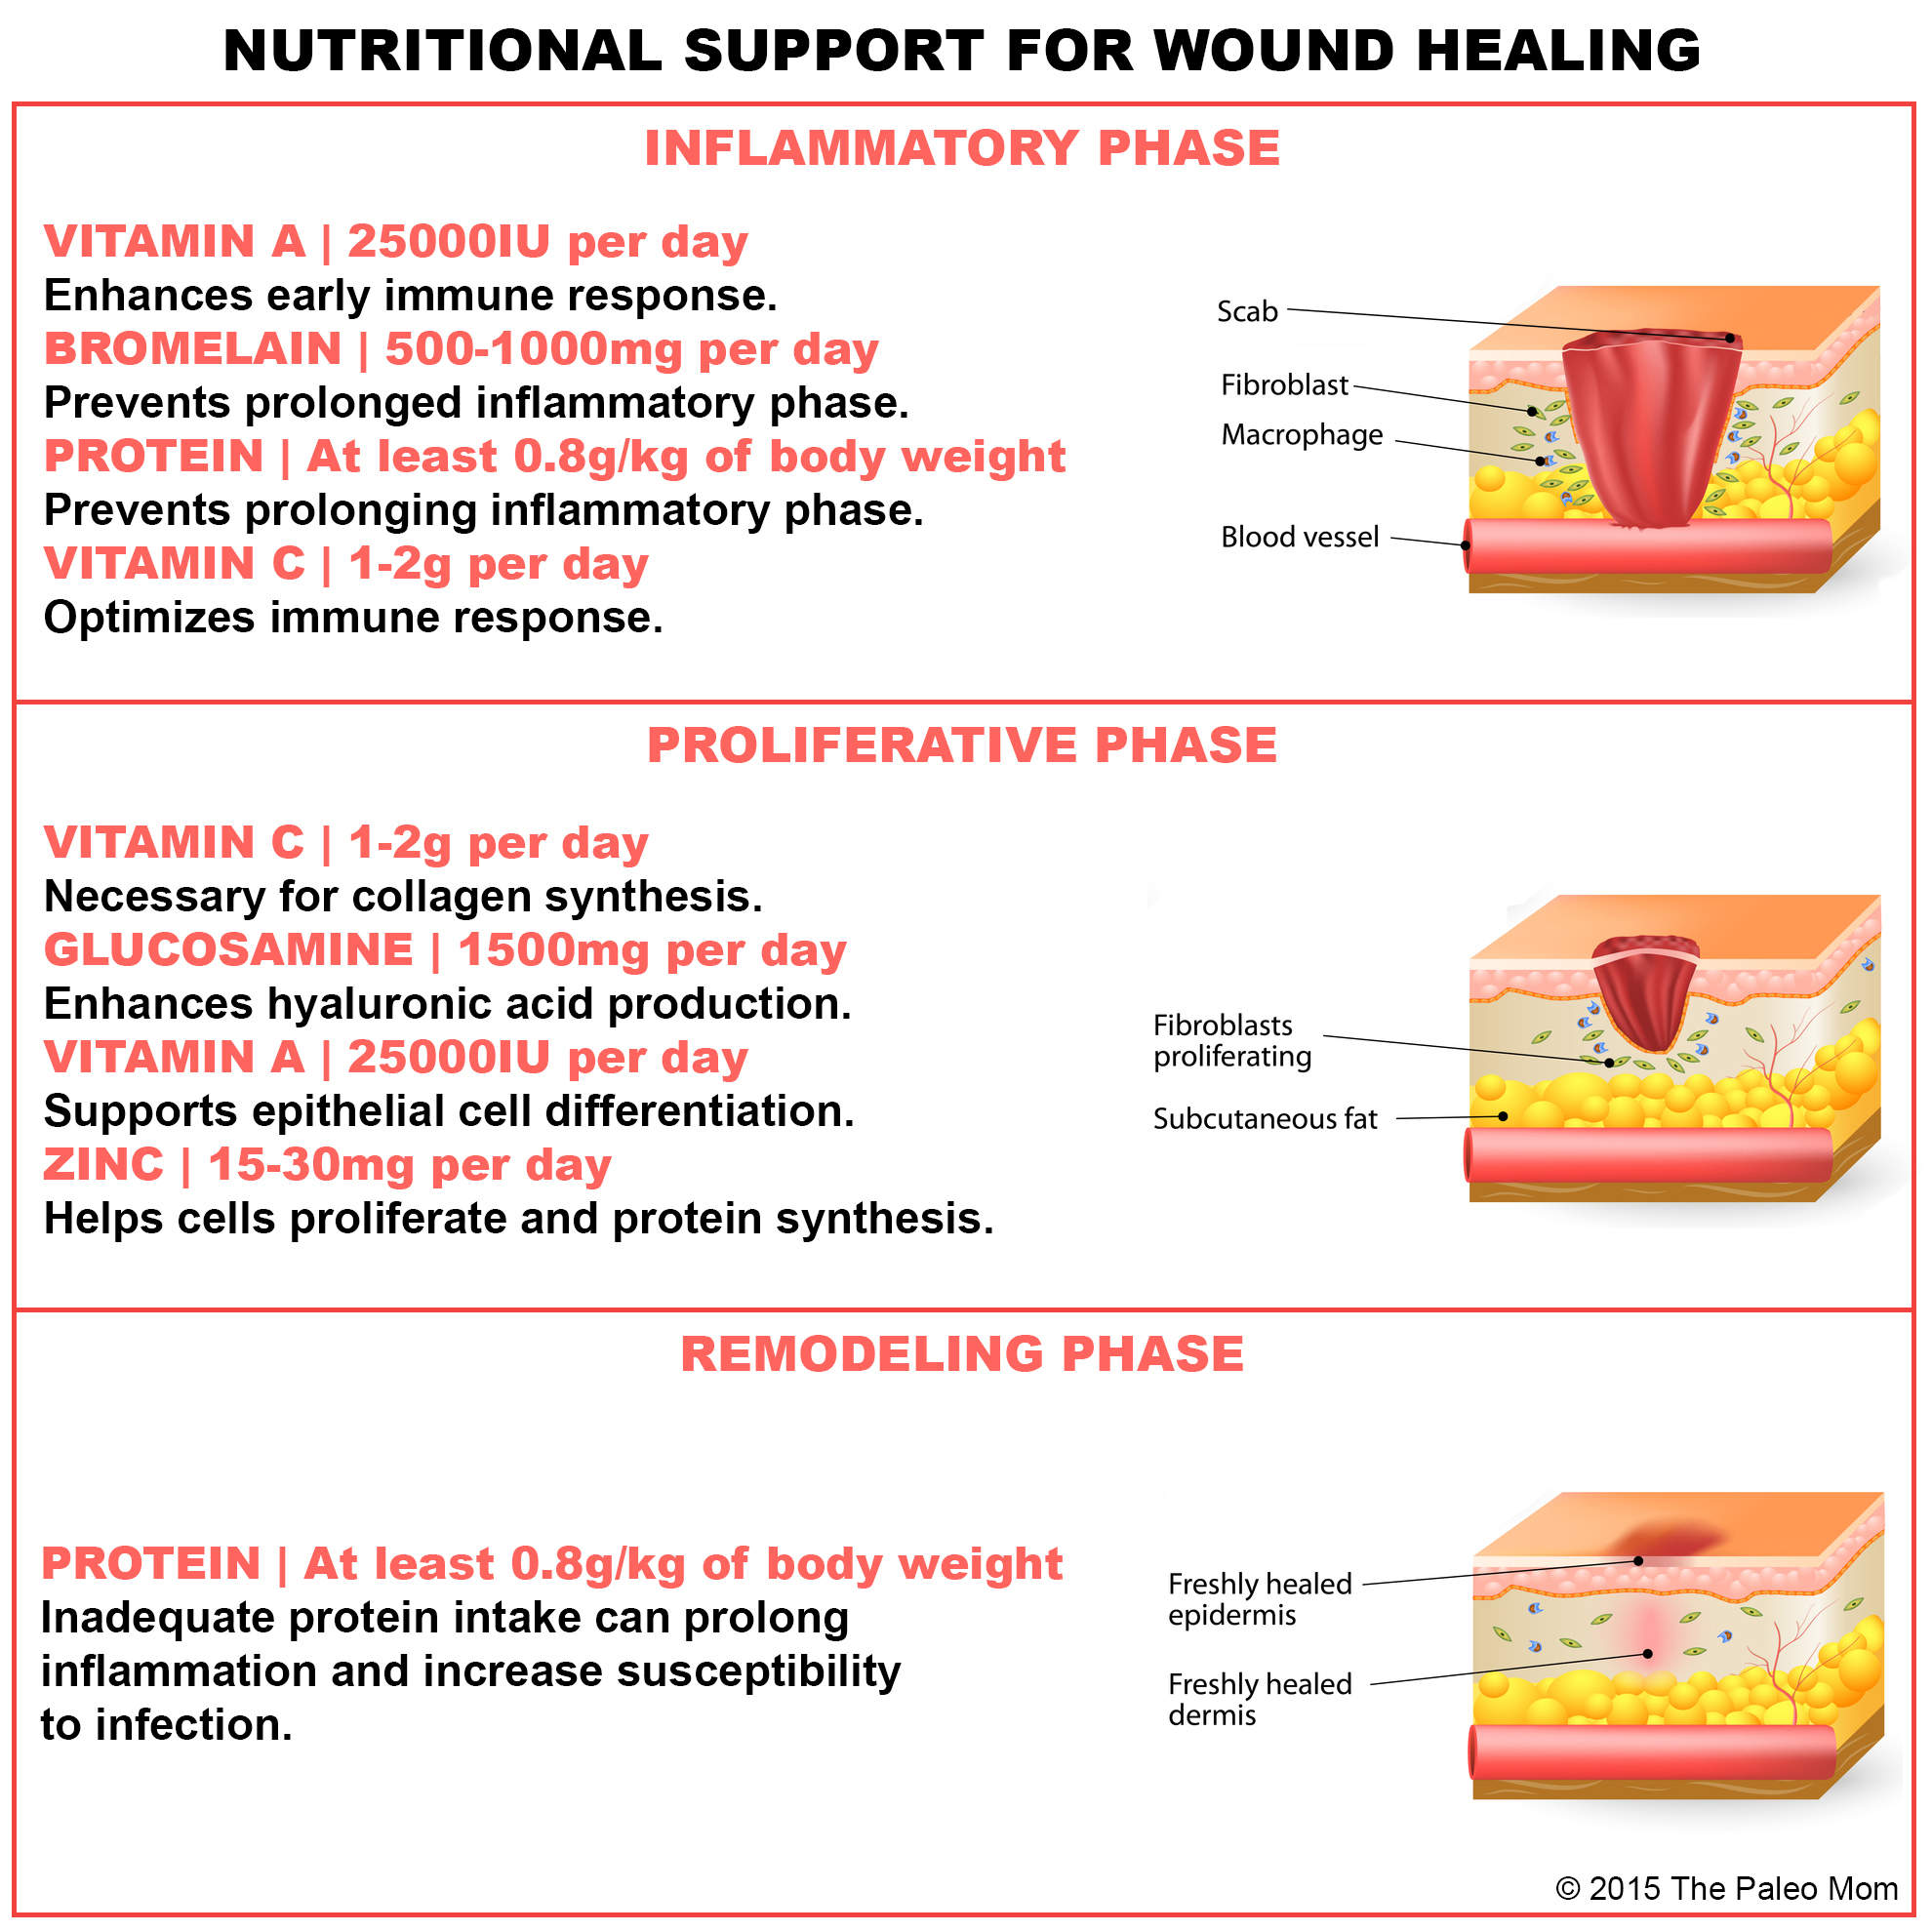 Nutritional Support For Injury And Wound Healing The